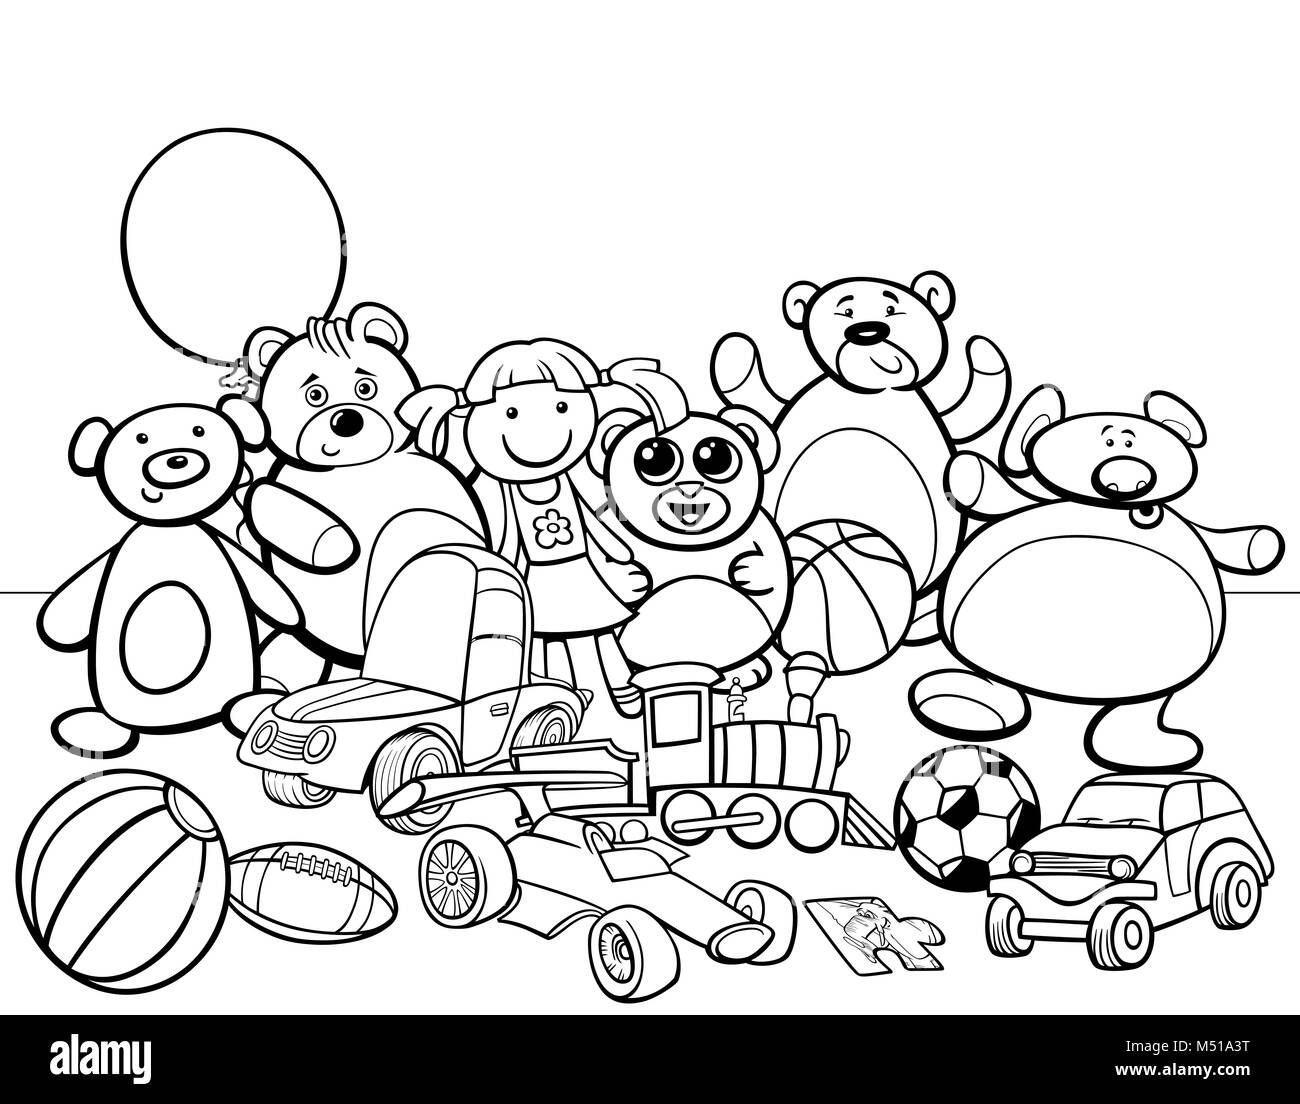 Toys Group Cartoon Coloring Book Stock Photo